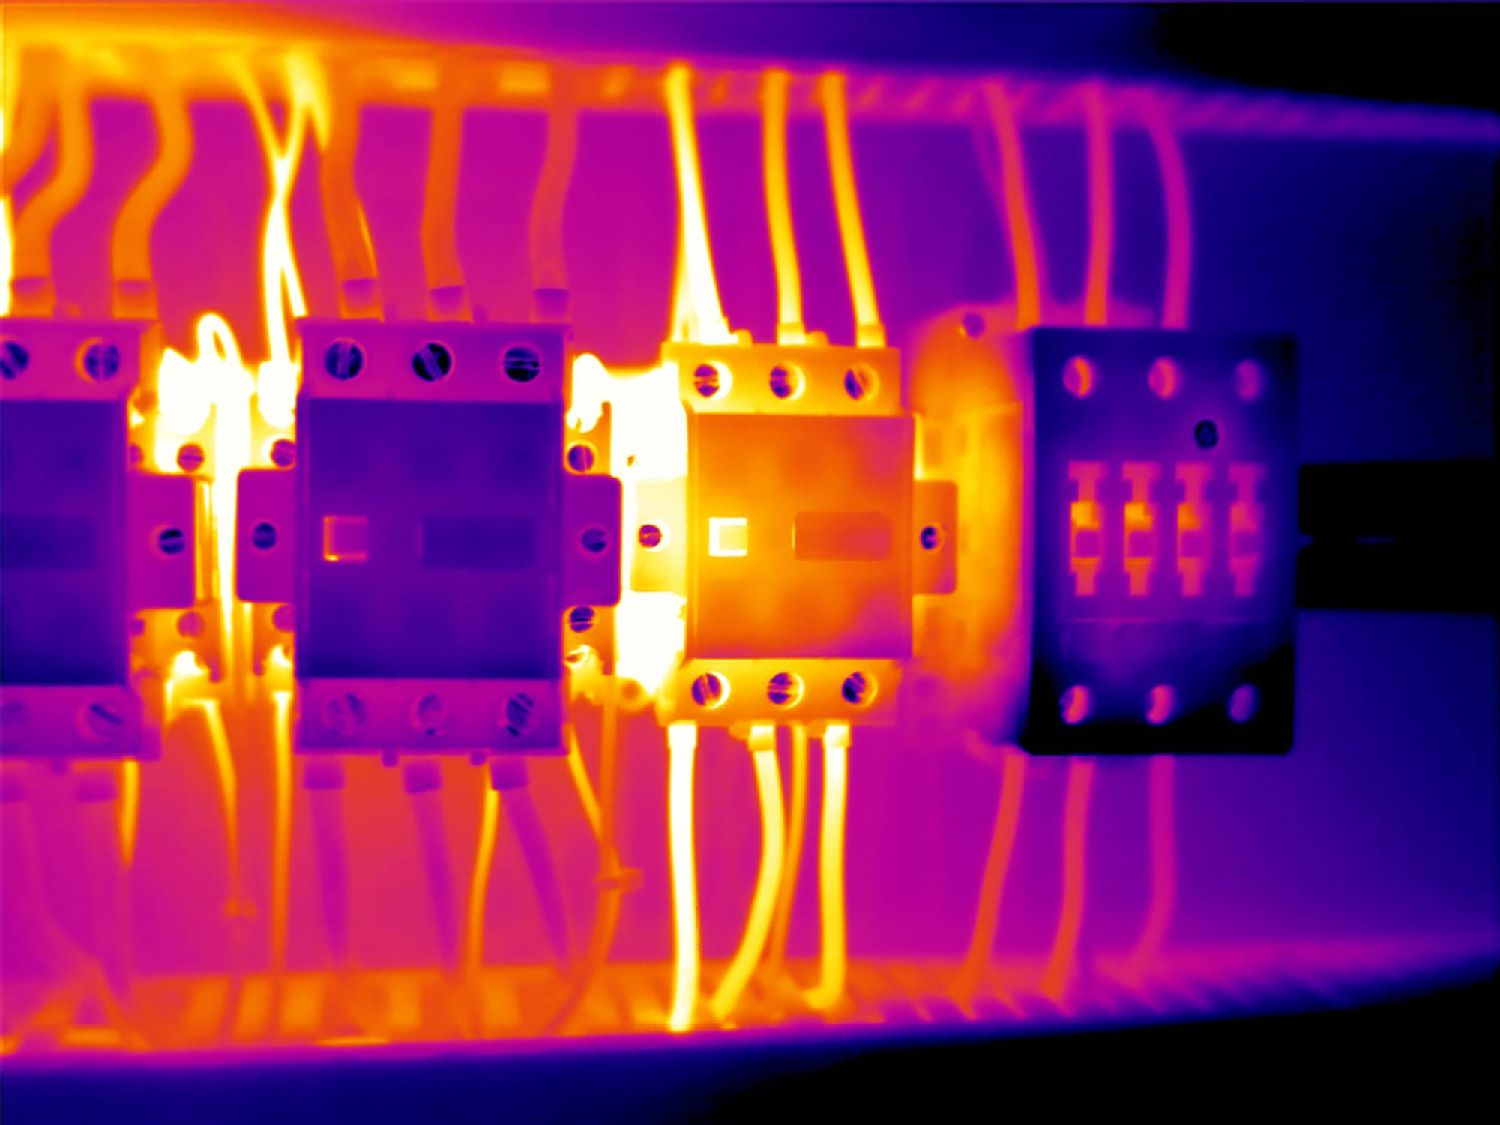 thermography-electrical-component-2000x1500.jpg